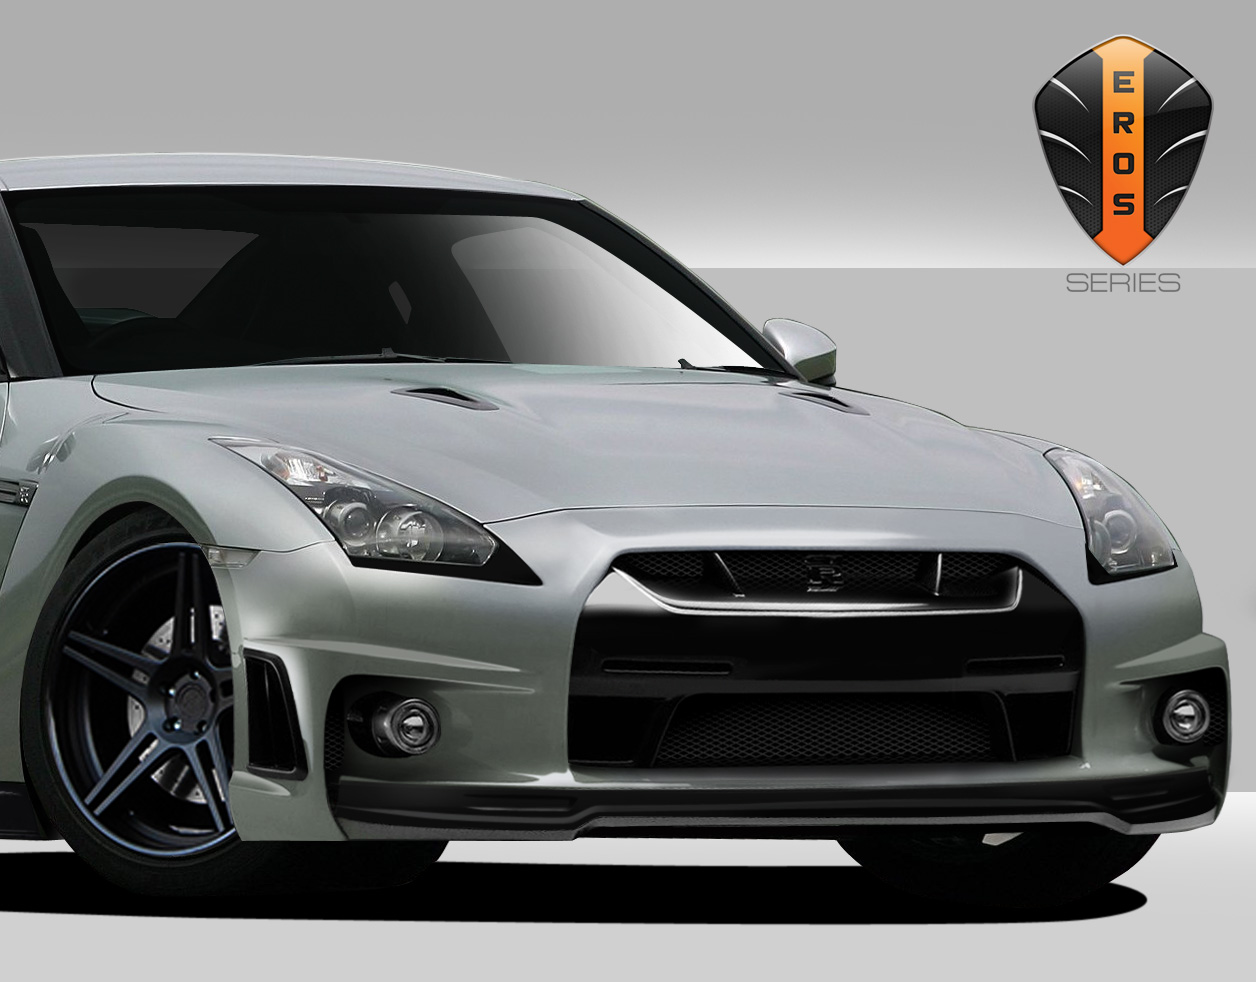 2016 nissan gtr fiberglass front bumper body kit nissan gt r r35 eros version 6 front. Black Bedroom Furniture Sets. Home Design Ideas